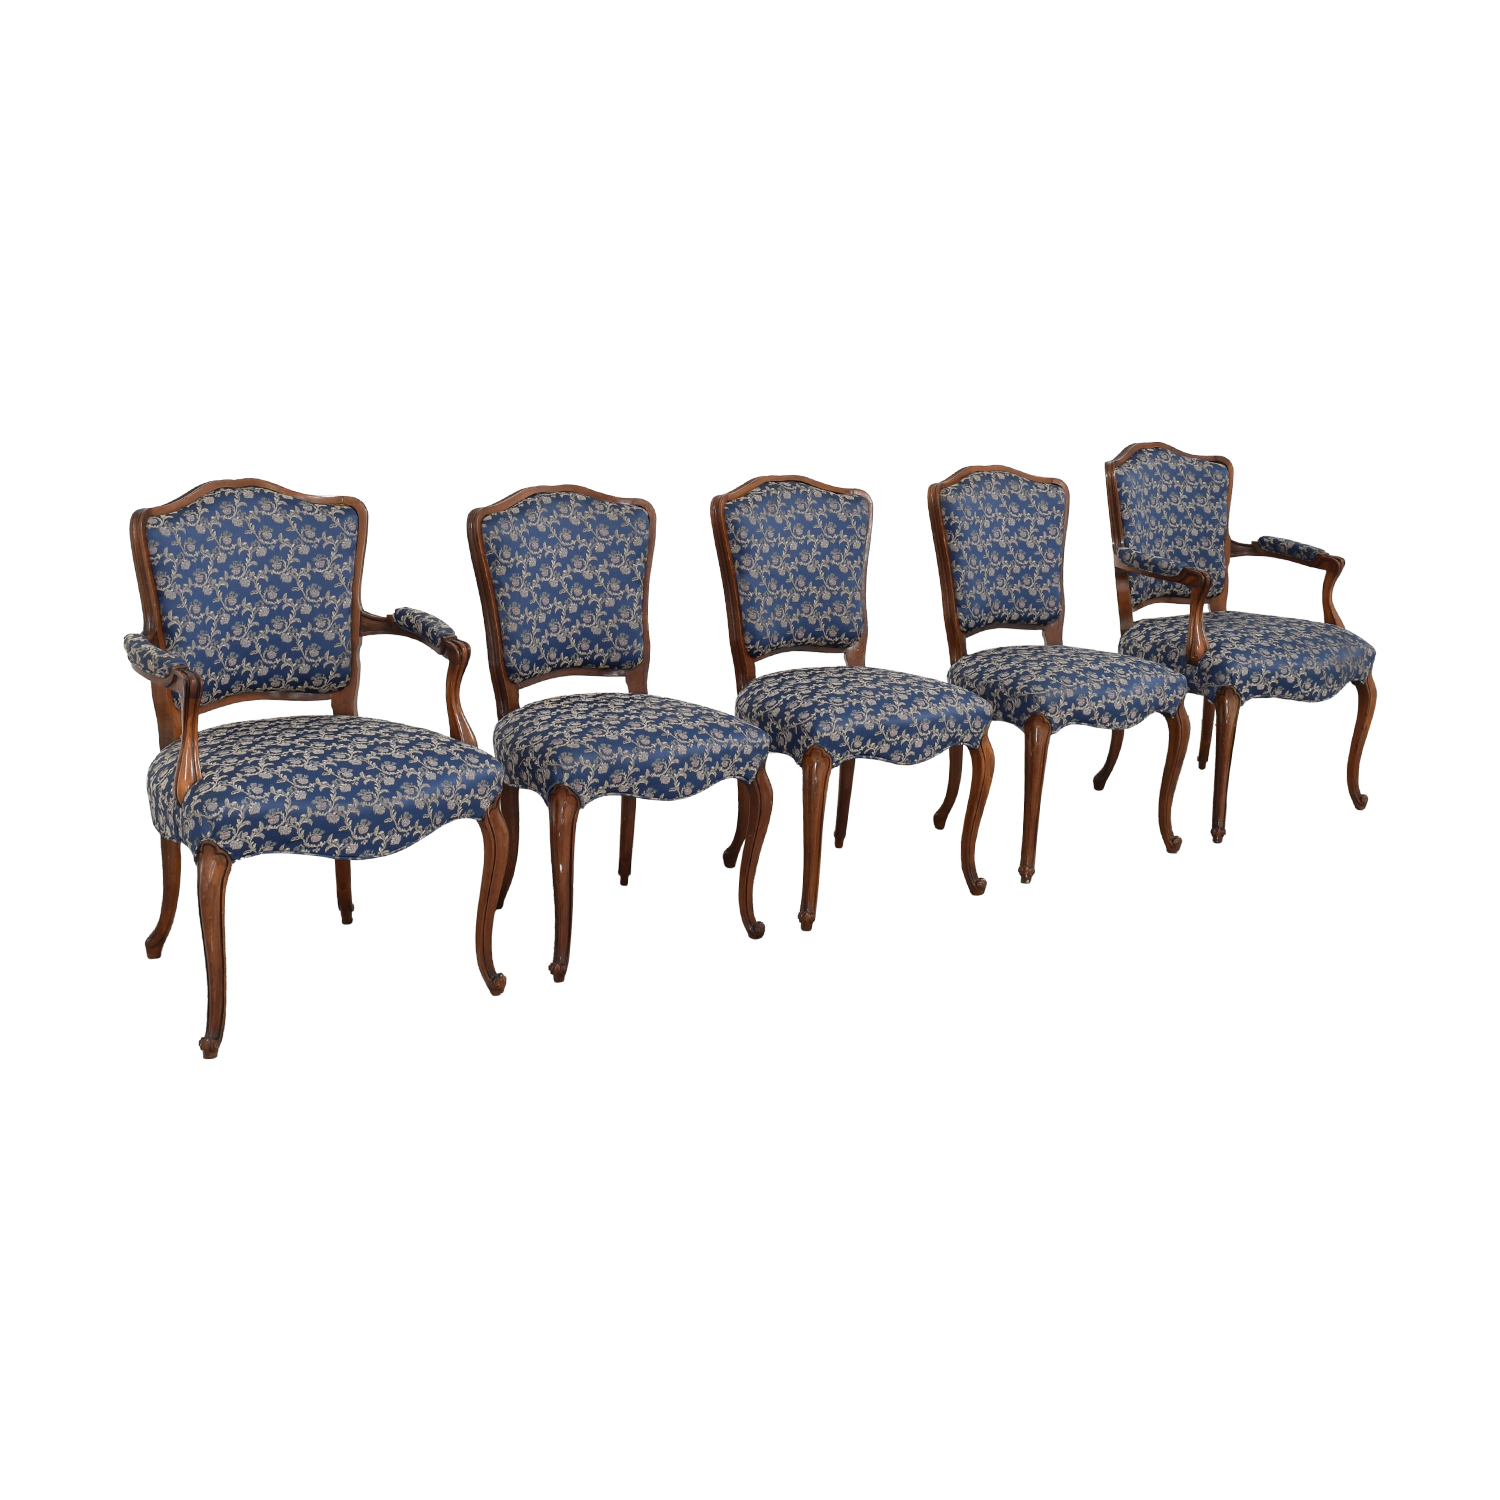 French Provincial Dining Chairs coupon